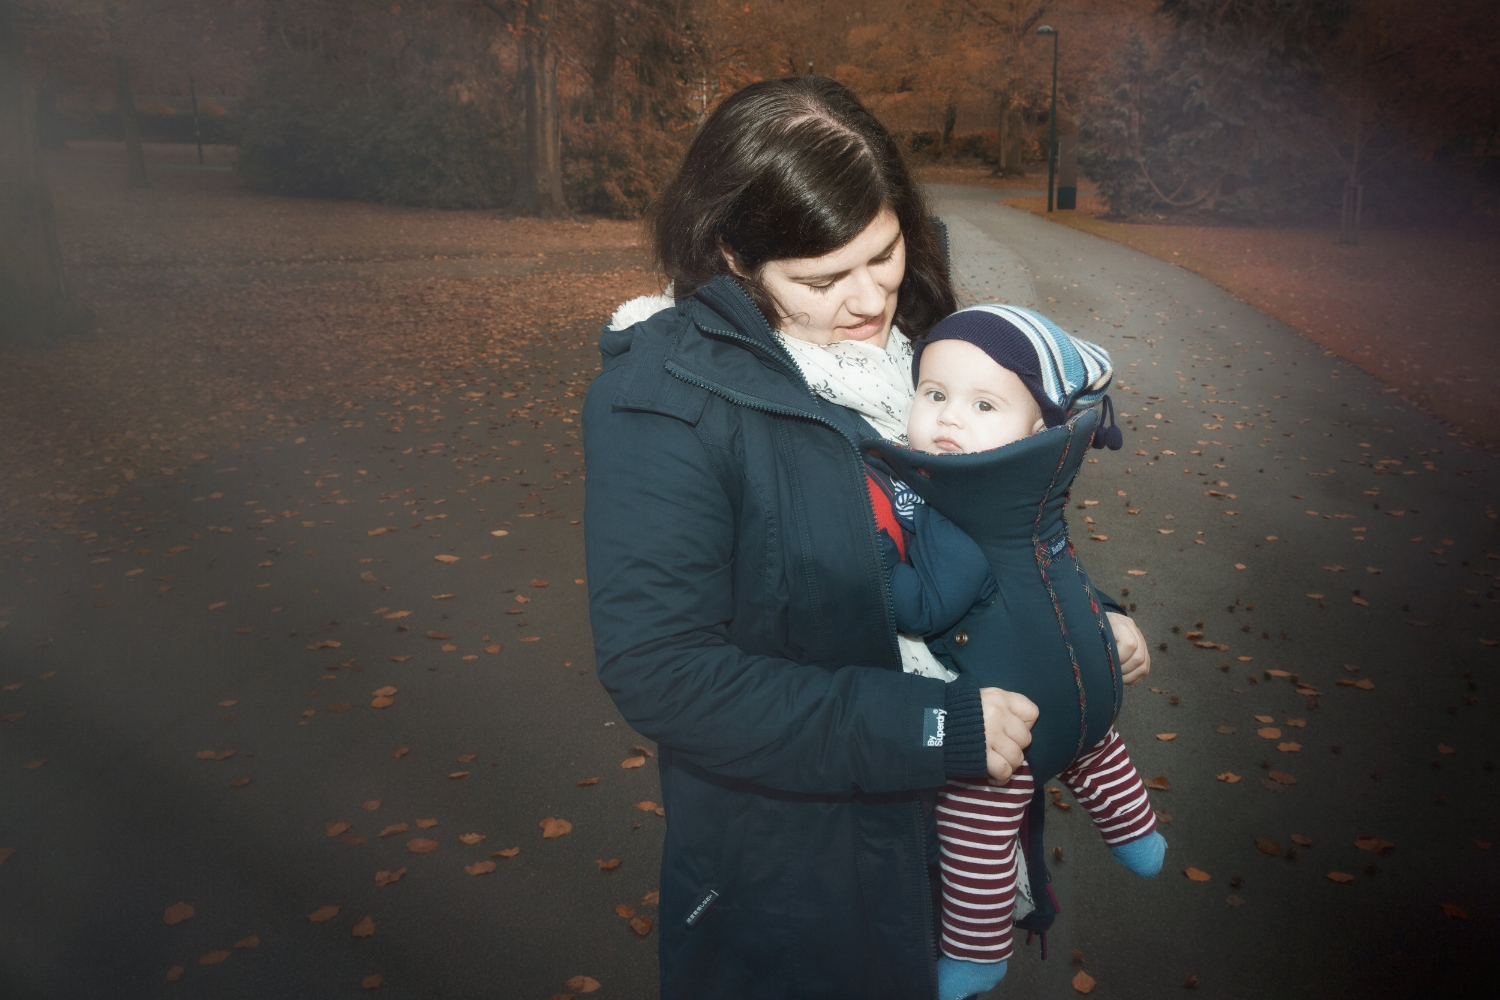 Lucria Creative, Wayne Hudson, Family photography, Autumn, Coventry, Warwickshire, Photographer